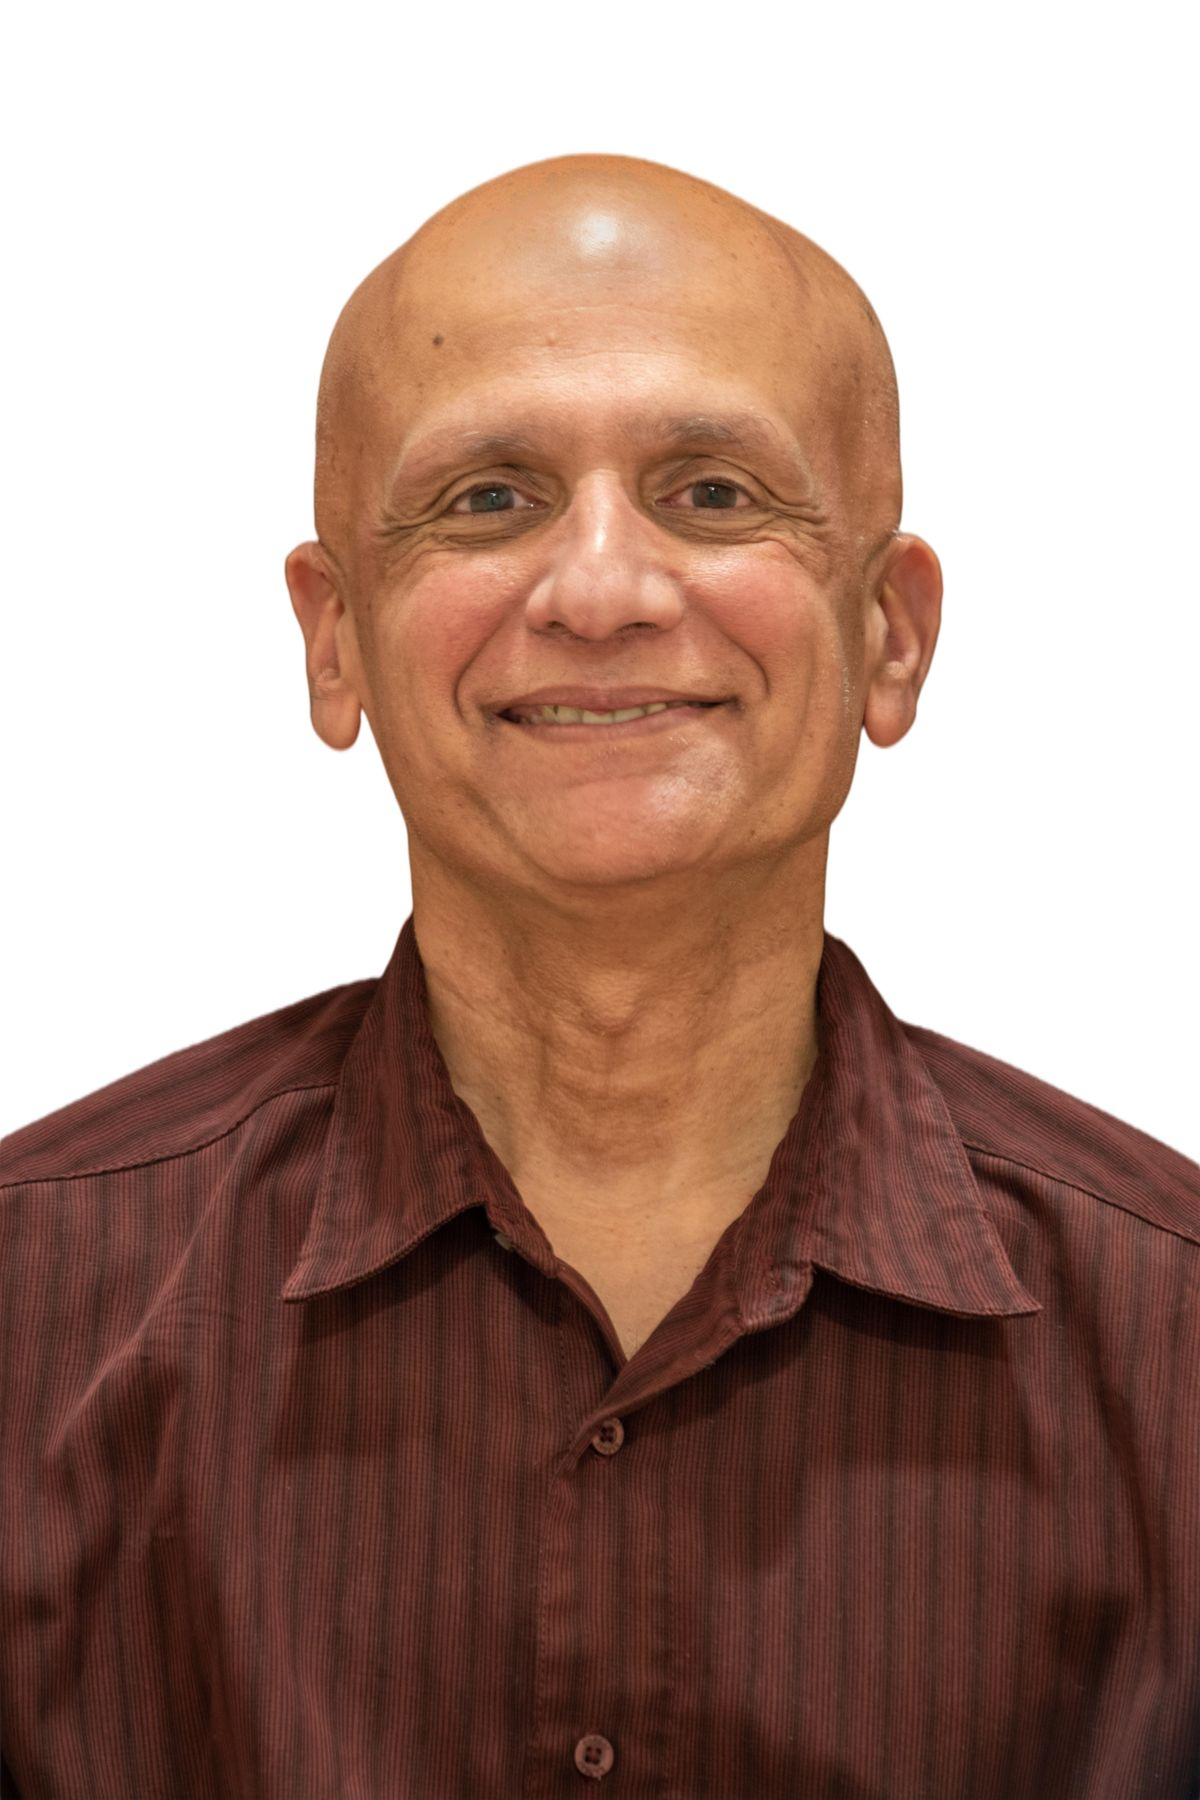 Intel Appoints Sunil Shenoy as Senior Vice President of Design Engineering Group, Intel